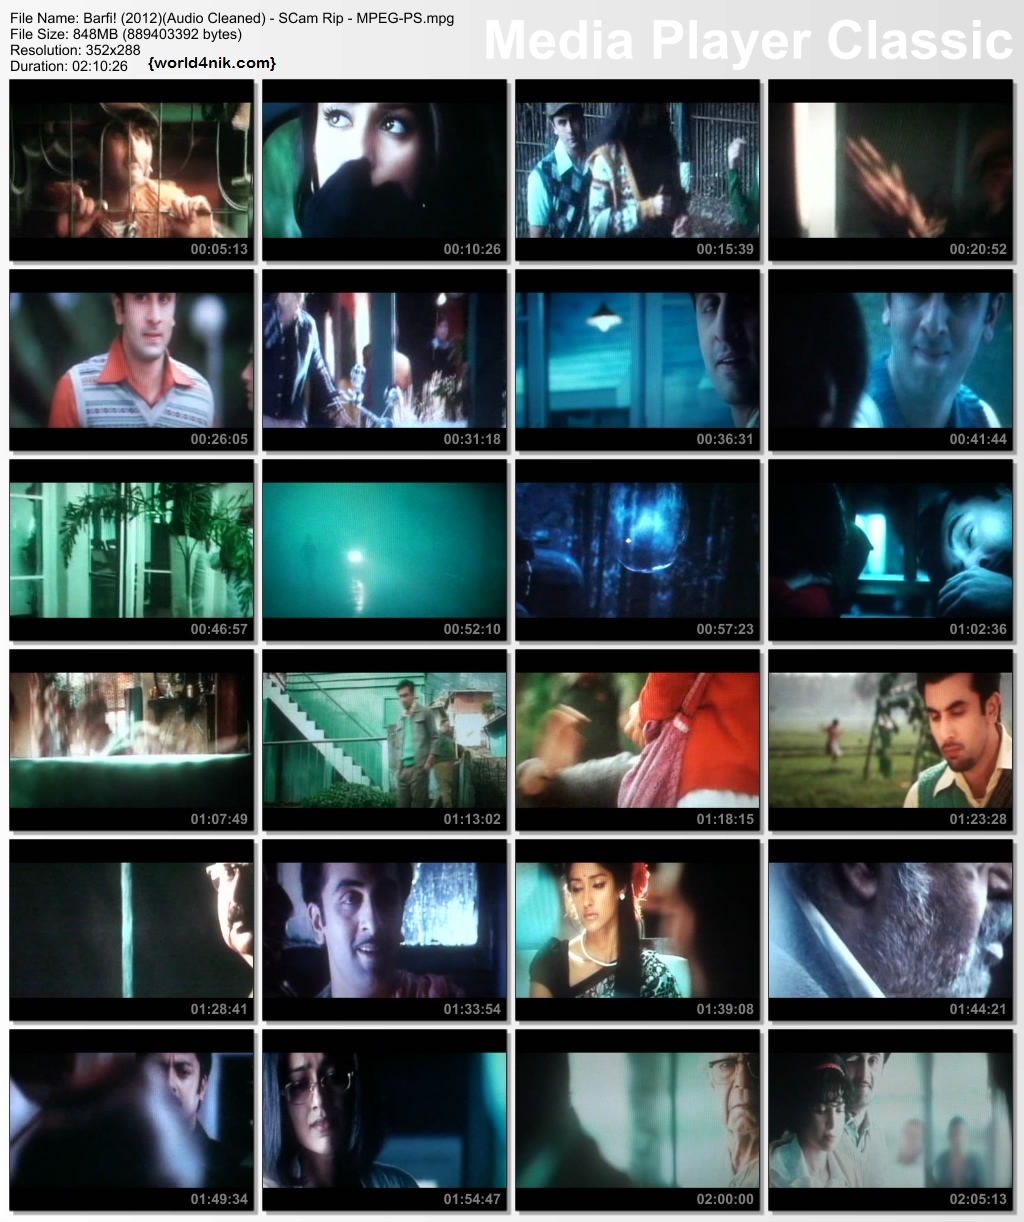 http://4.bp.blogspot.com/-znYwRlal51c/UFNSU_N9F2I/AAAAAAAACKk/iMQFh2kccUA/s1600/Barfi-movie-screen-shot.jpg